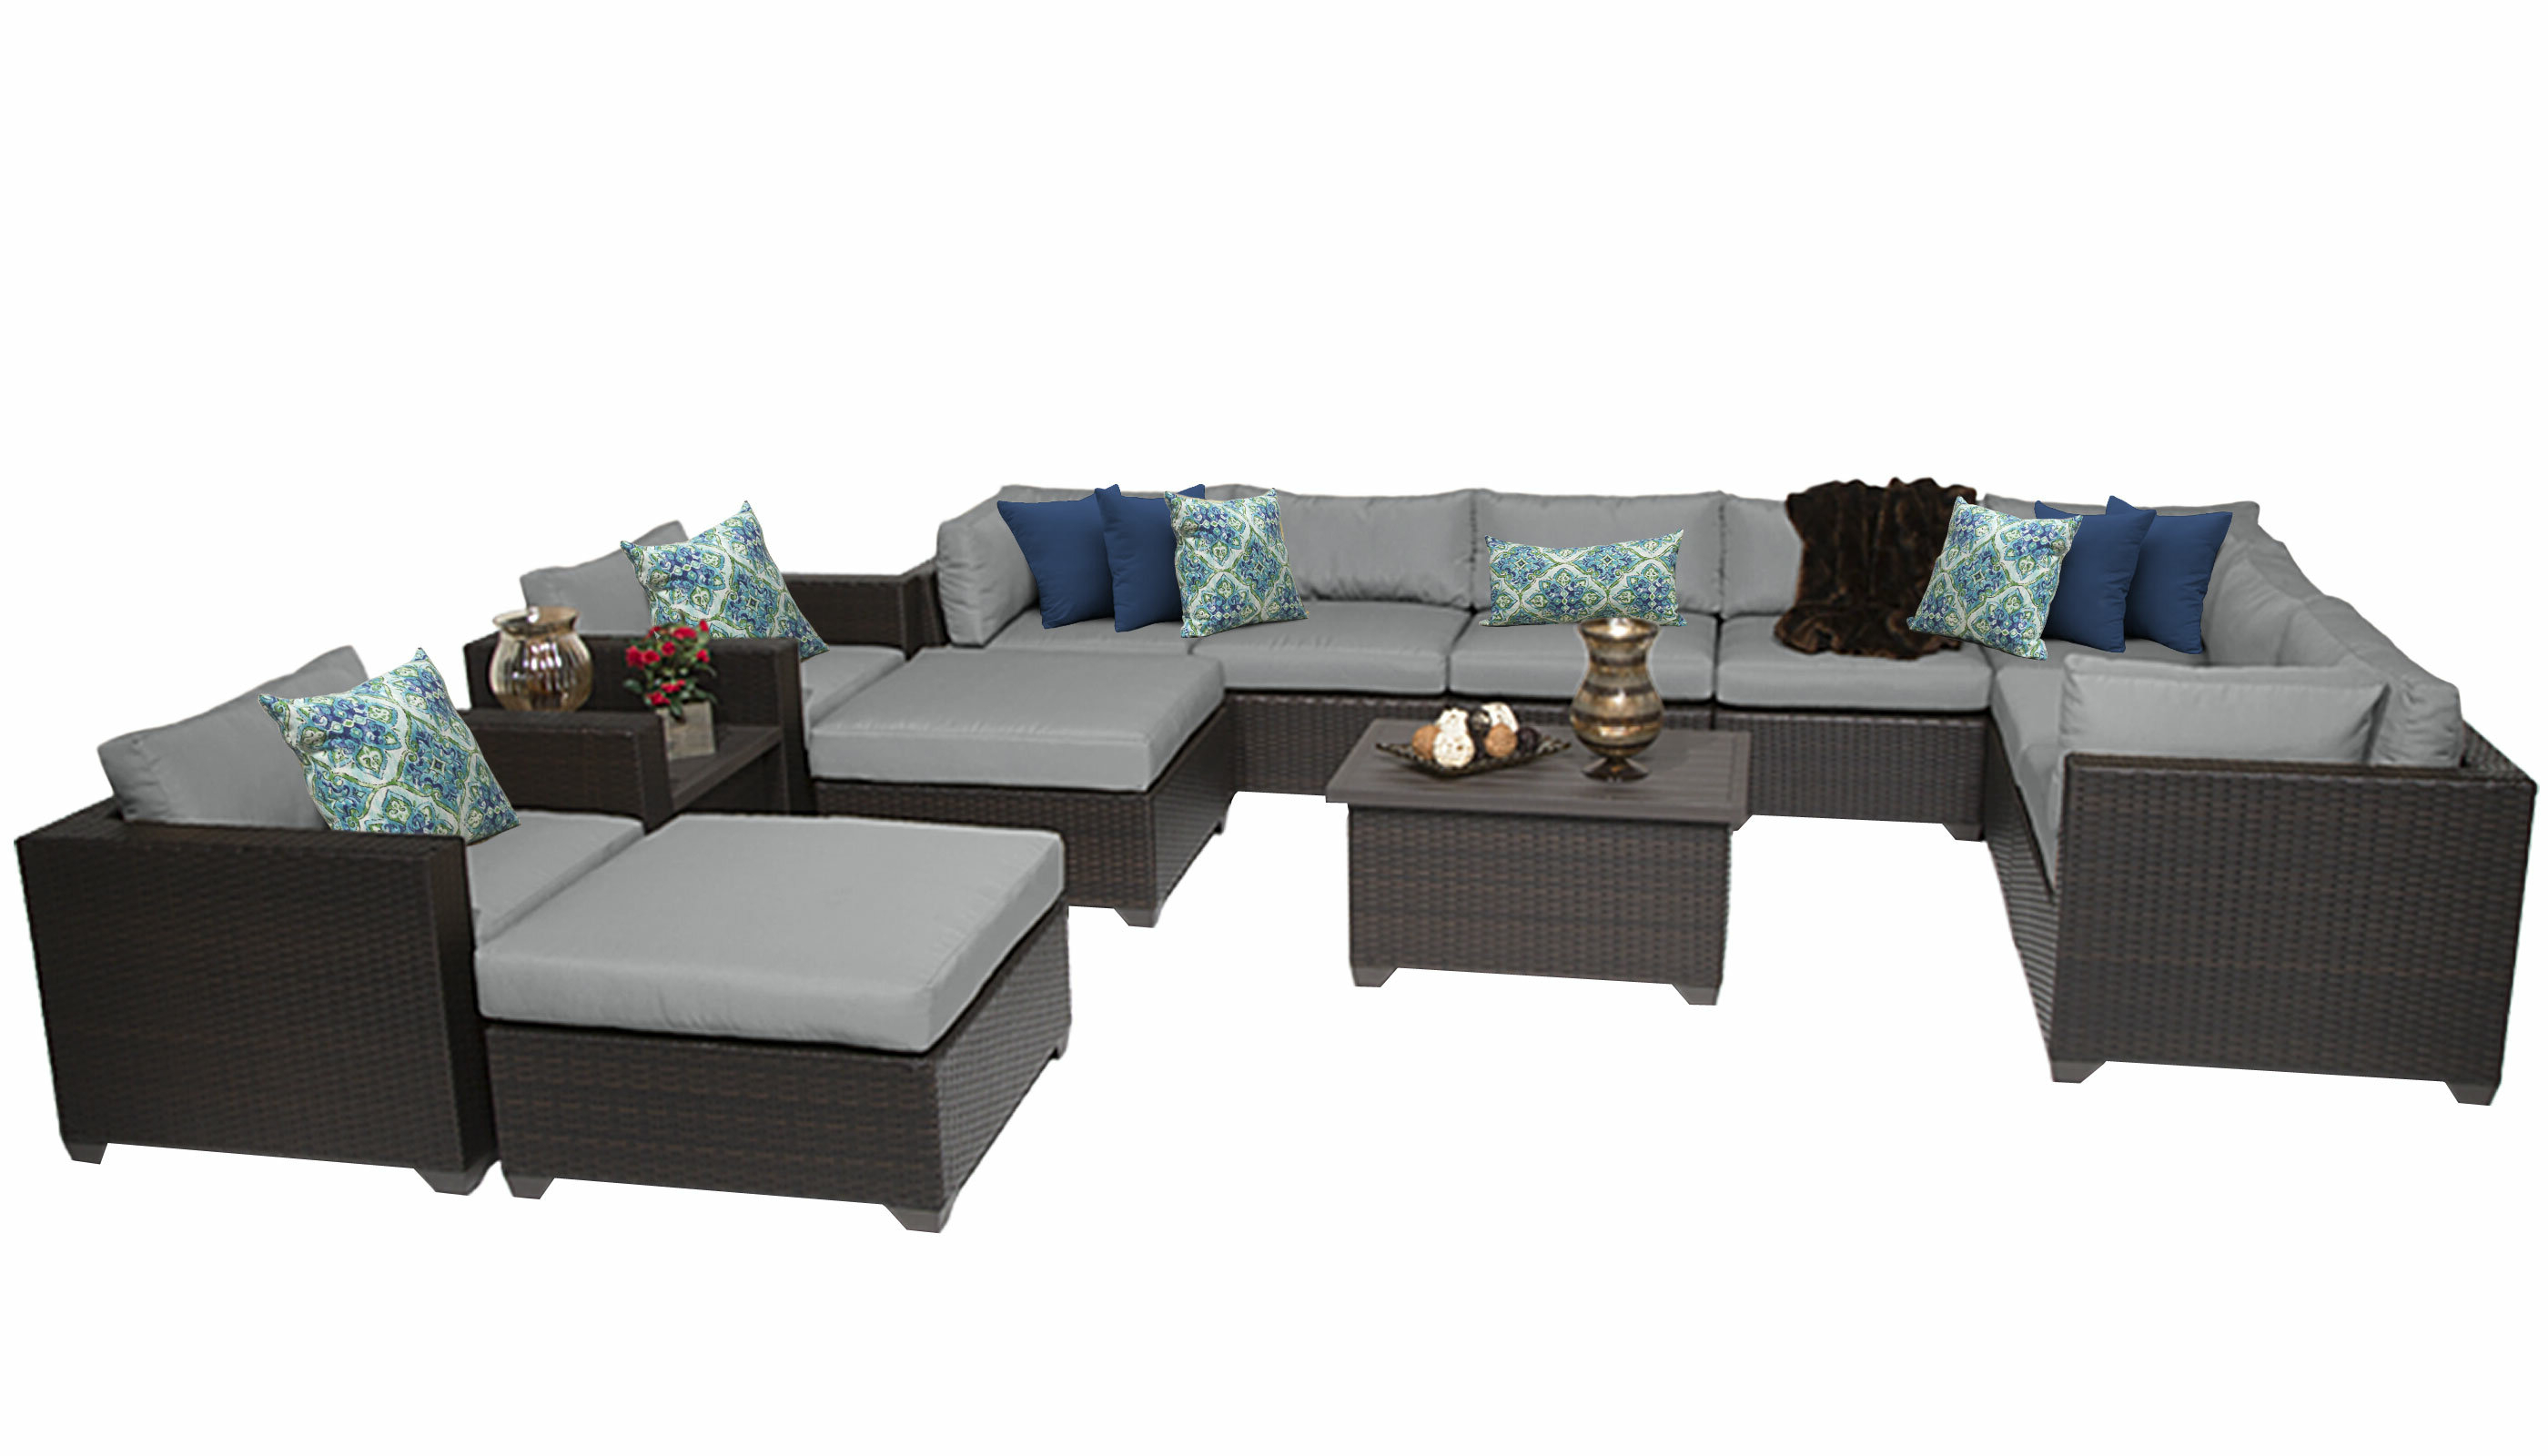 Well Known Outdoor 13 Piece Wicker Patio Sets With Cushions With Regard To Fernando 13 Piece Rattan Sectional Seating Group With Cushions (View 9 of 25)